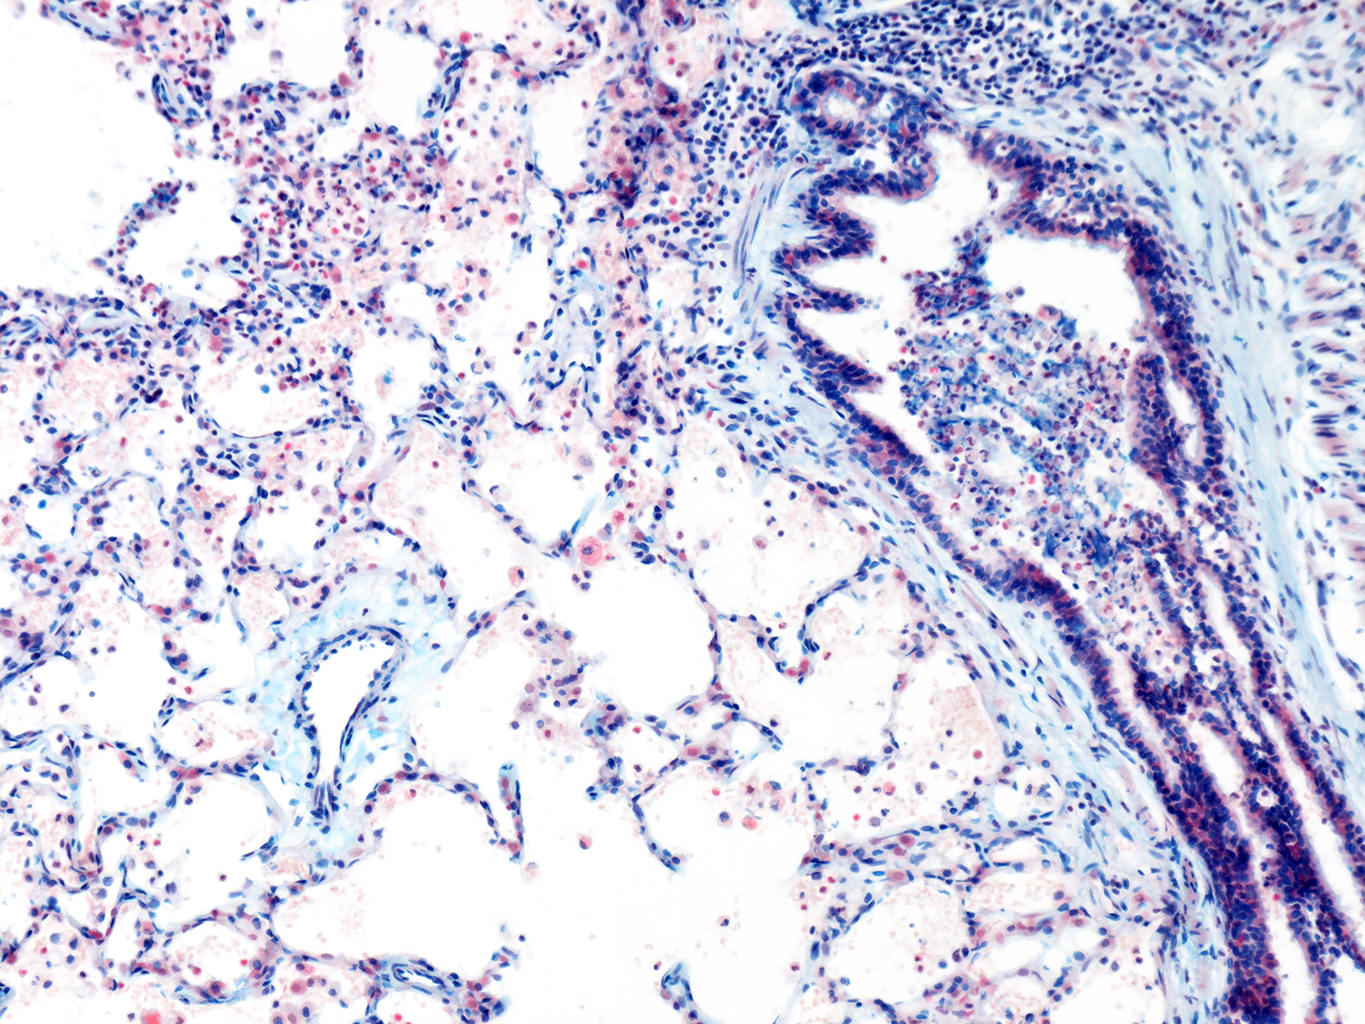 AB Staining of 11 Month-Old Human Lung from Donor D094-LLL-6A3